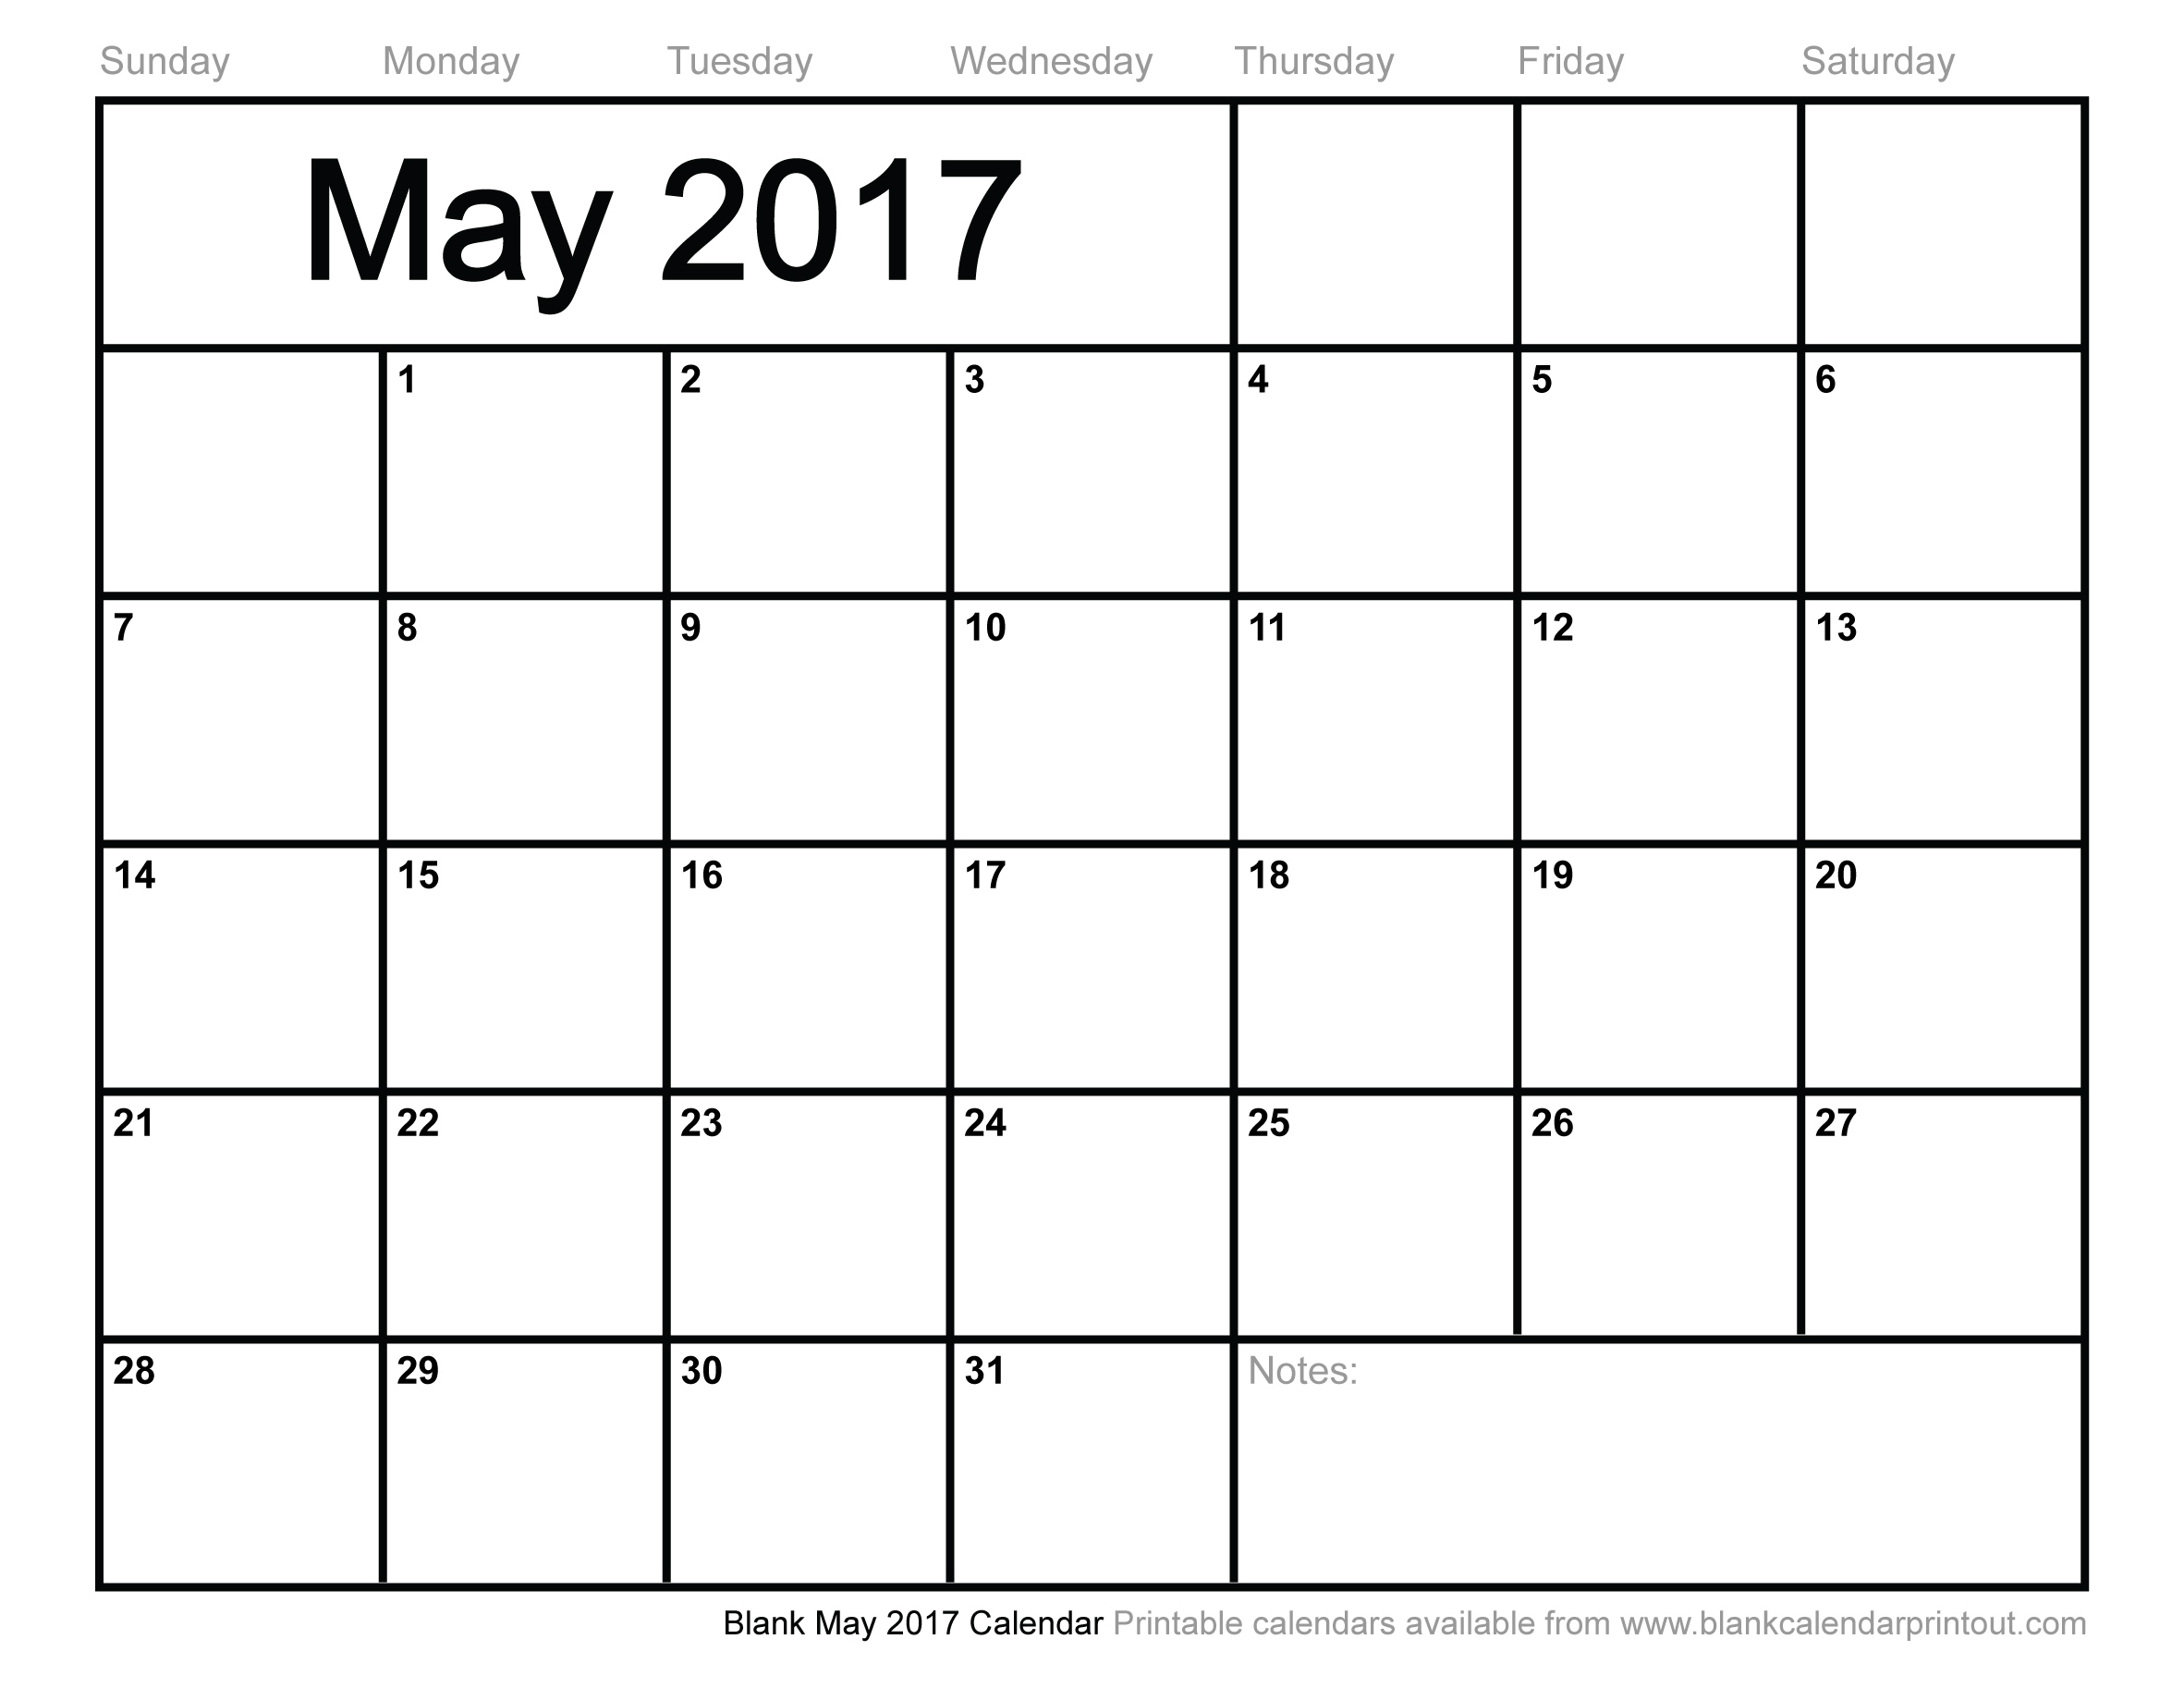 Blank May 2017 Calendar to Print